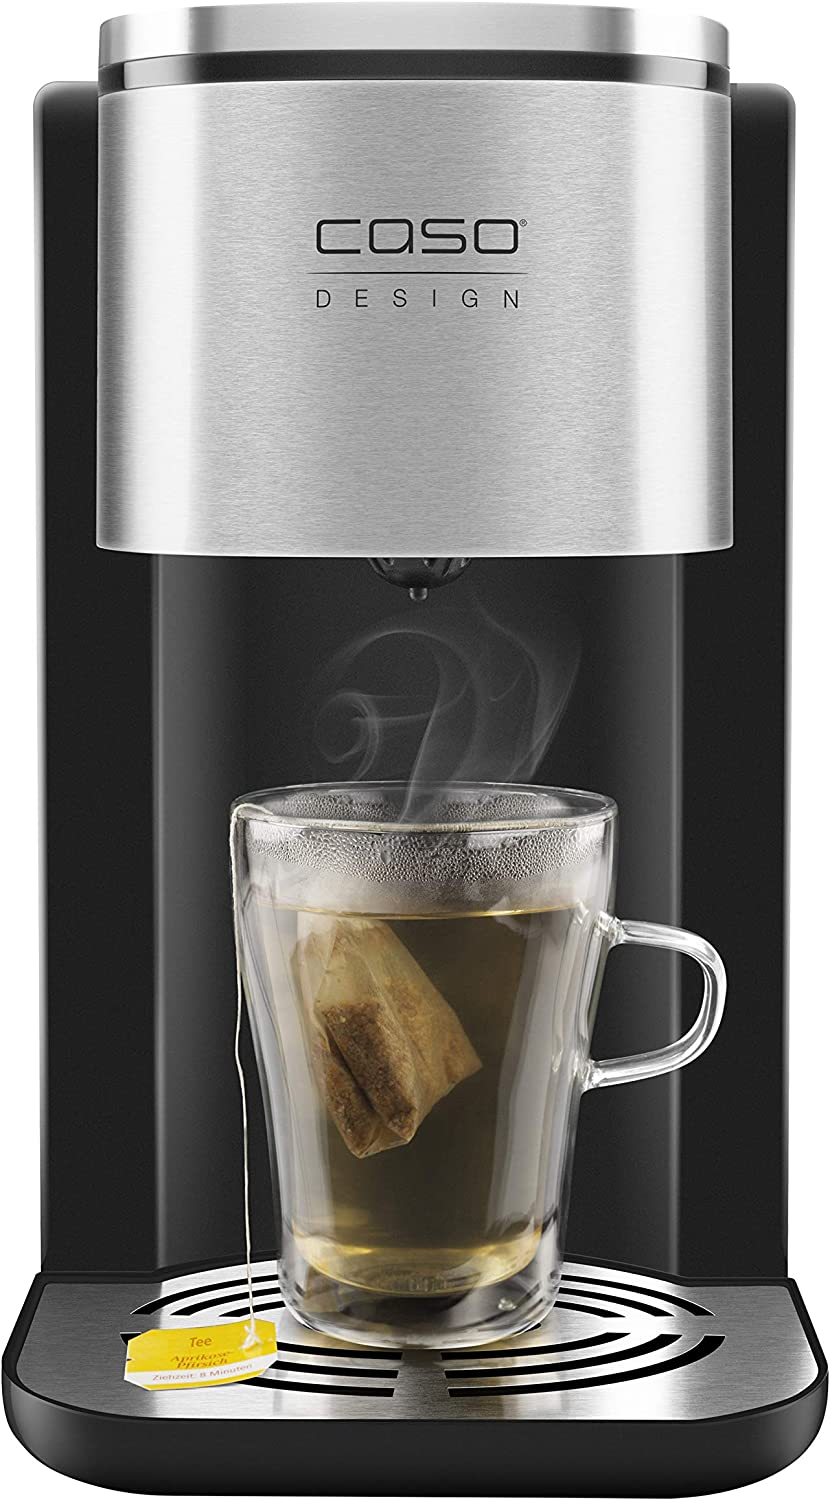 Caso Design Touch Turbo 8-Second Water Large Max 50% OFF discharge sale Digit Hot Dispenser Boil